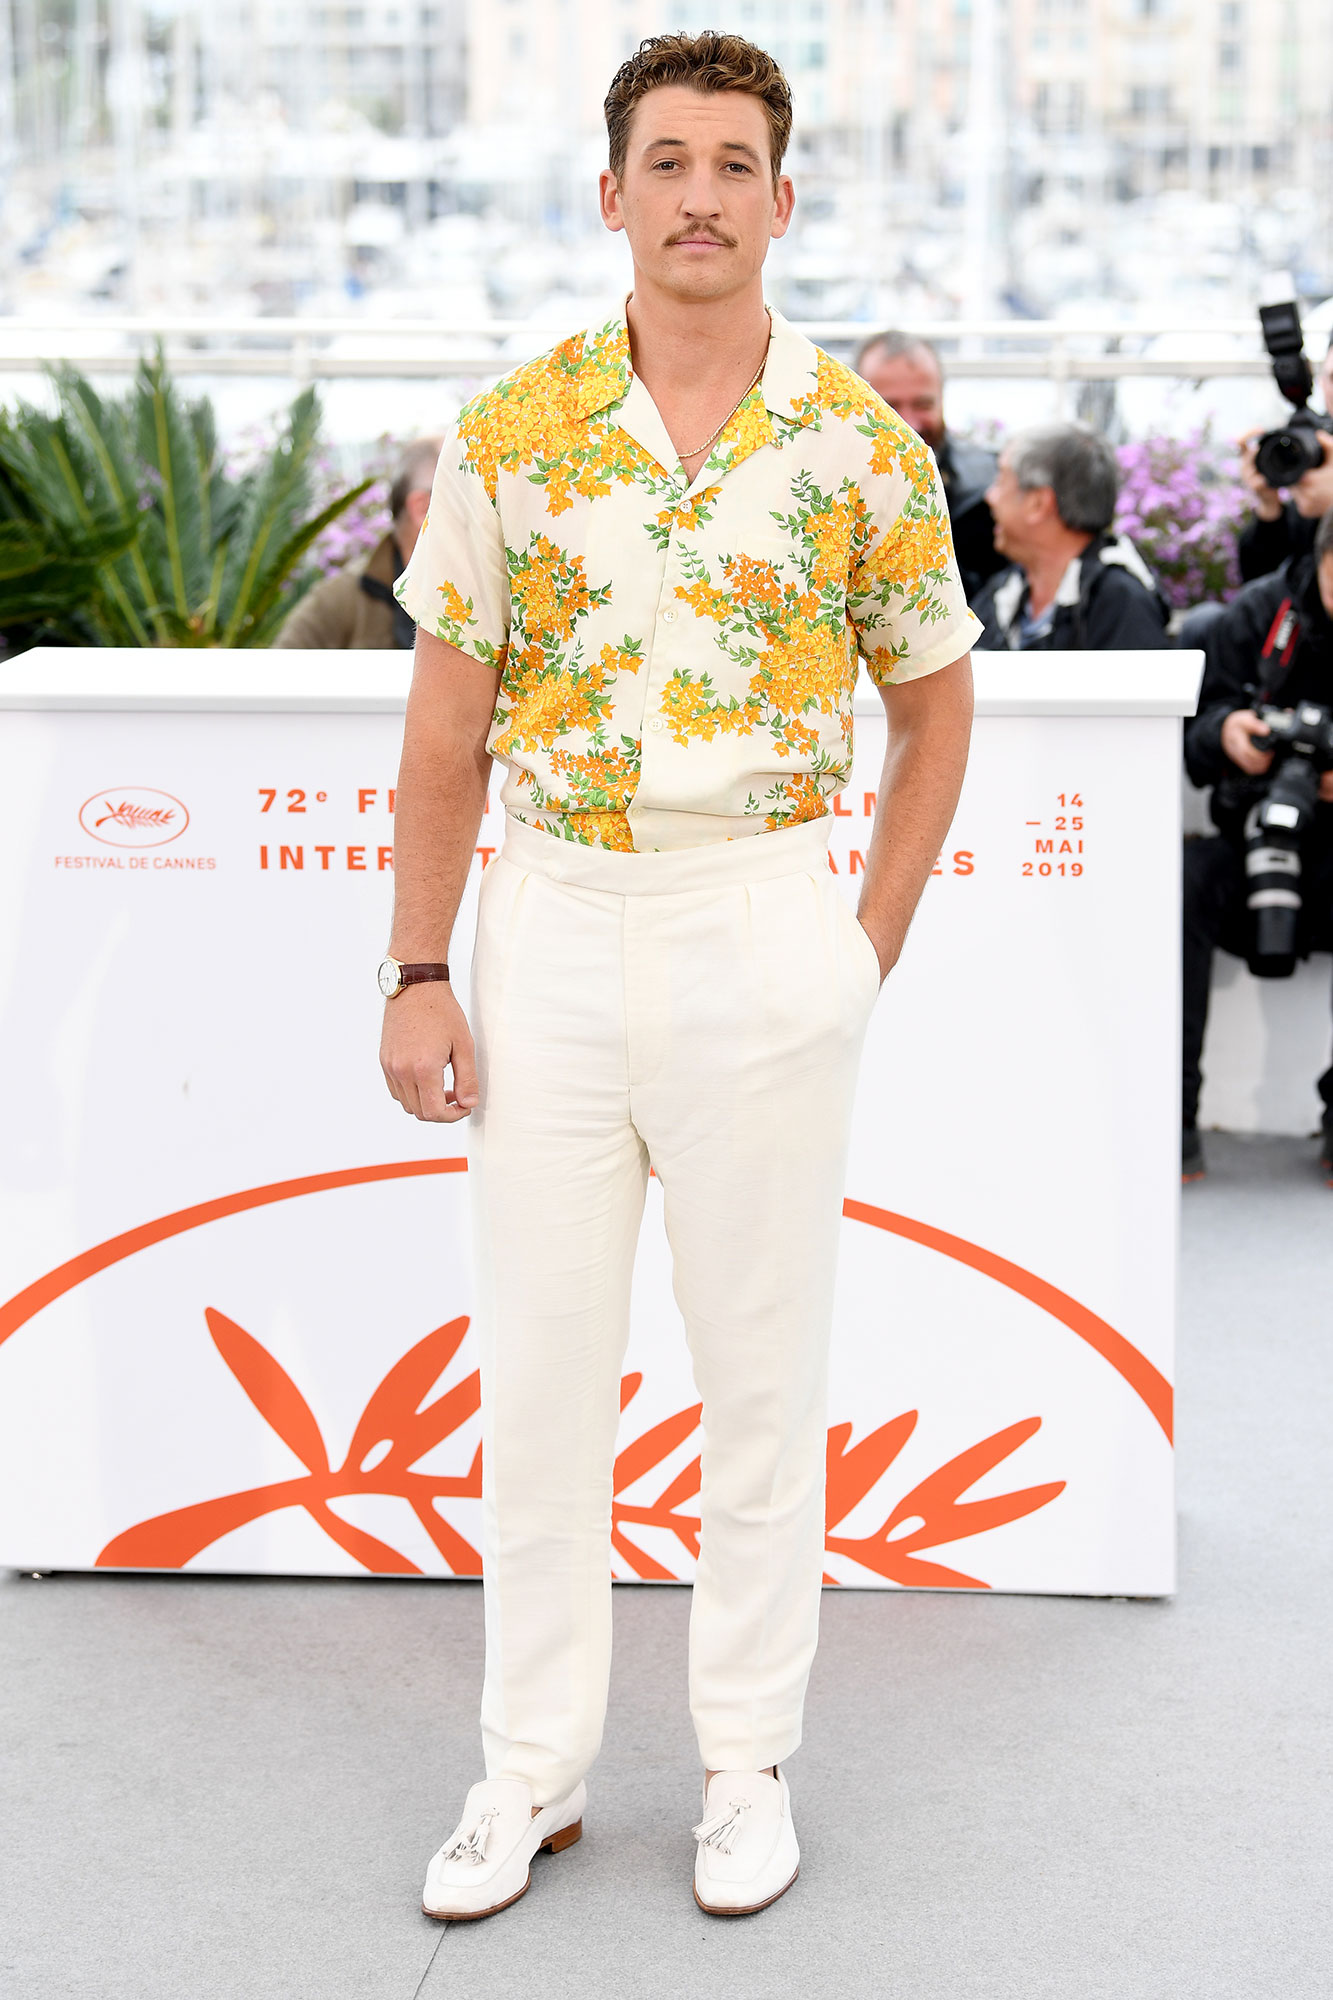 Miles Teller Cannes Film Festival 2019 Most Stylish Guys Red Carpet - It was all about the flower power for the Too Old to Die Young star at the photo-call for the film on Saturday, May 18.